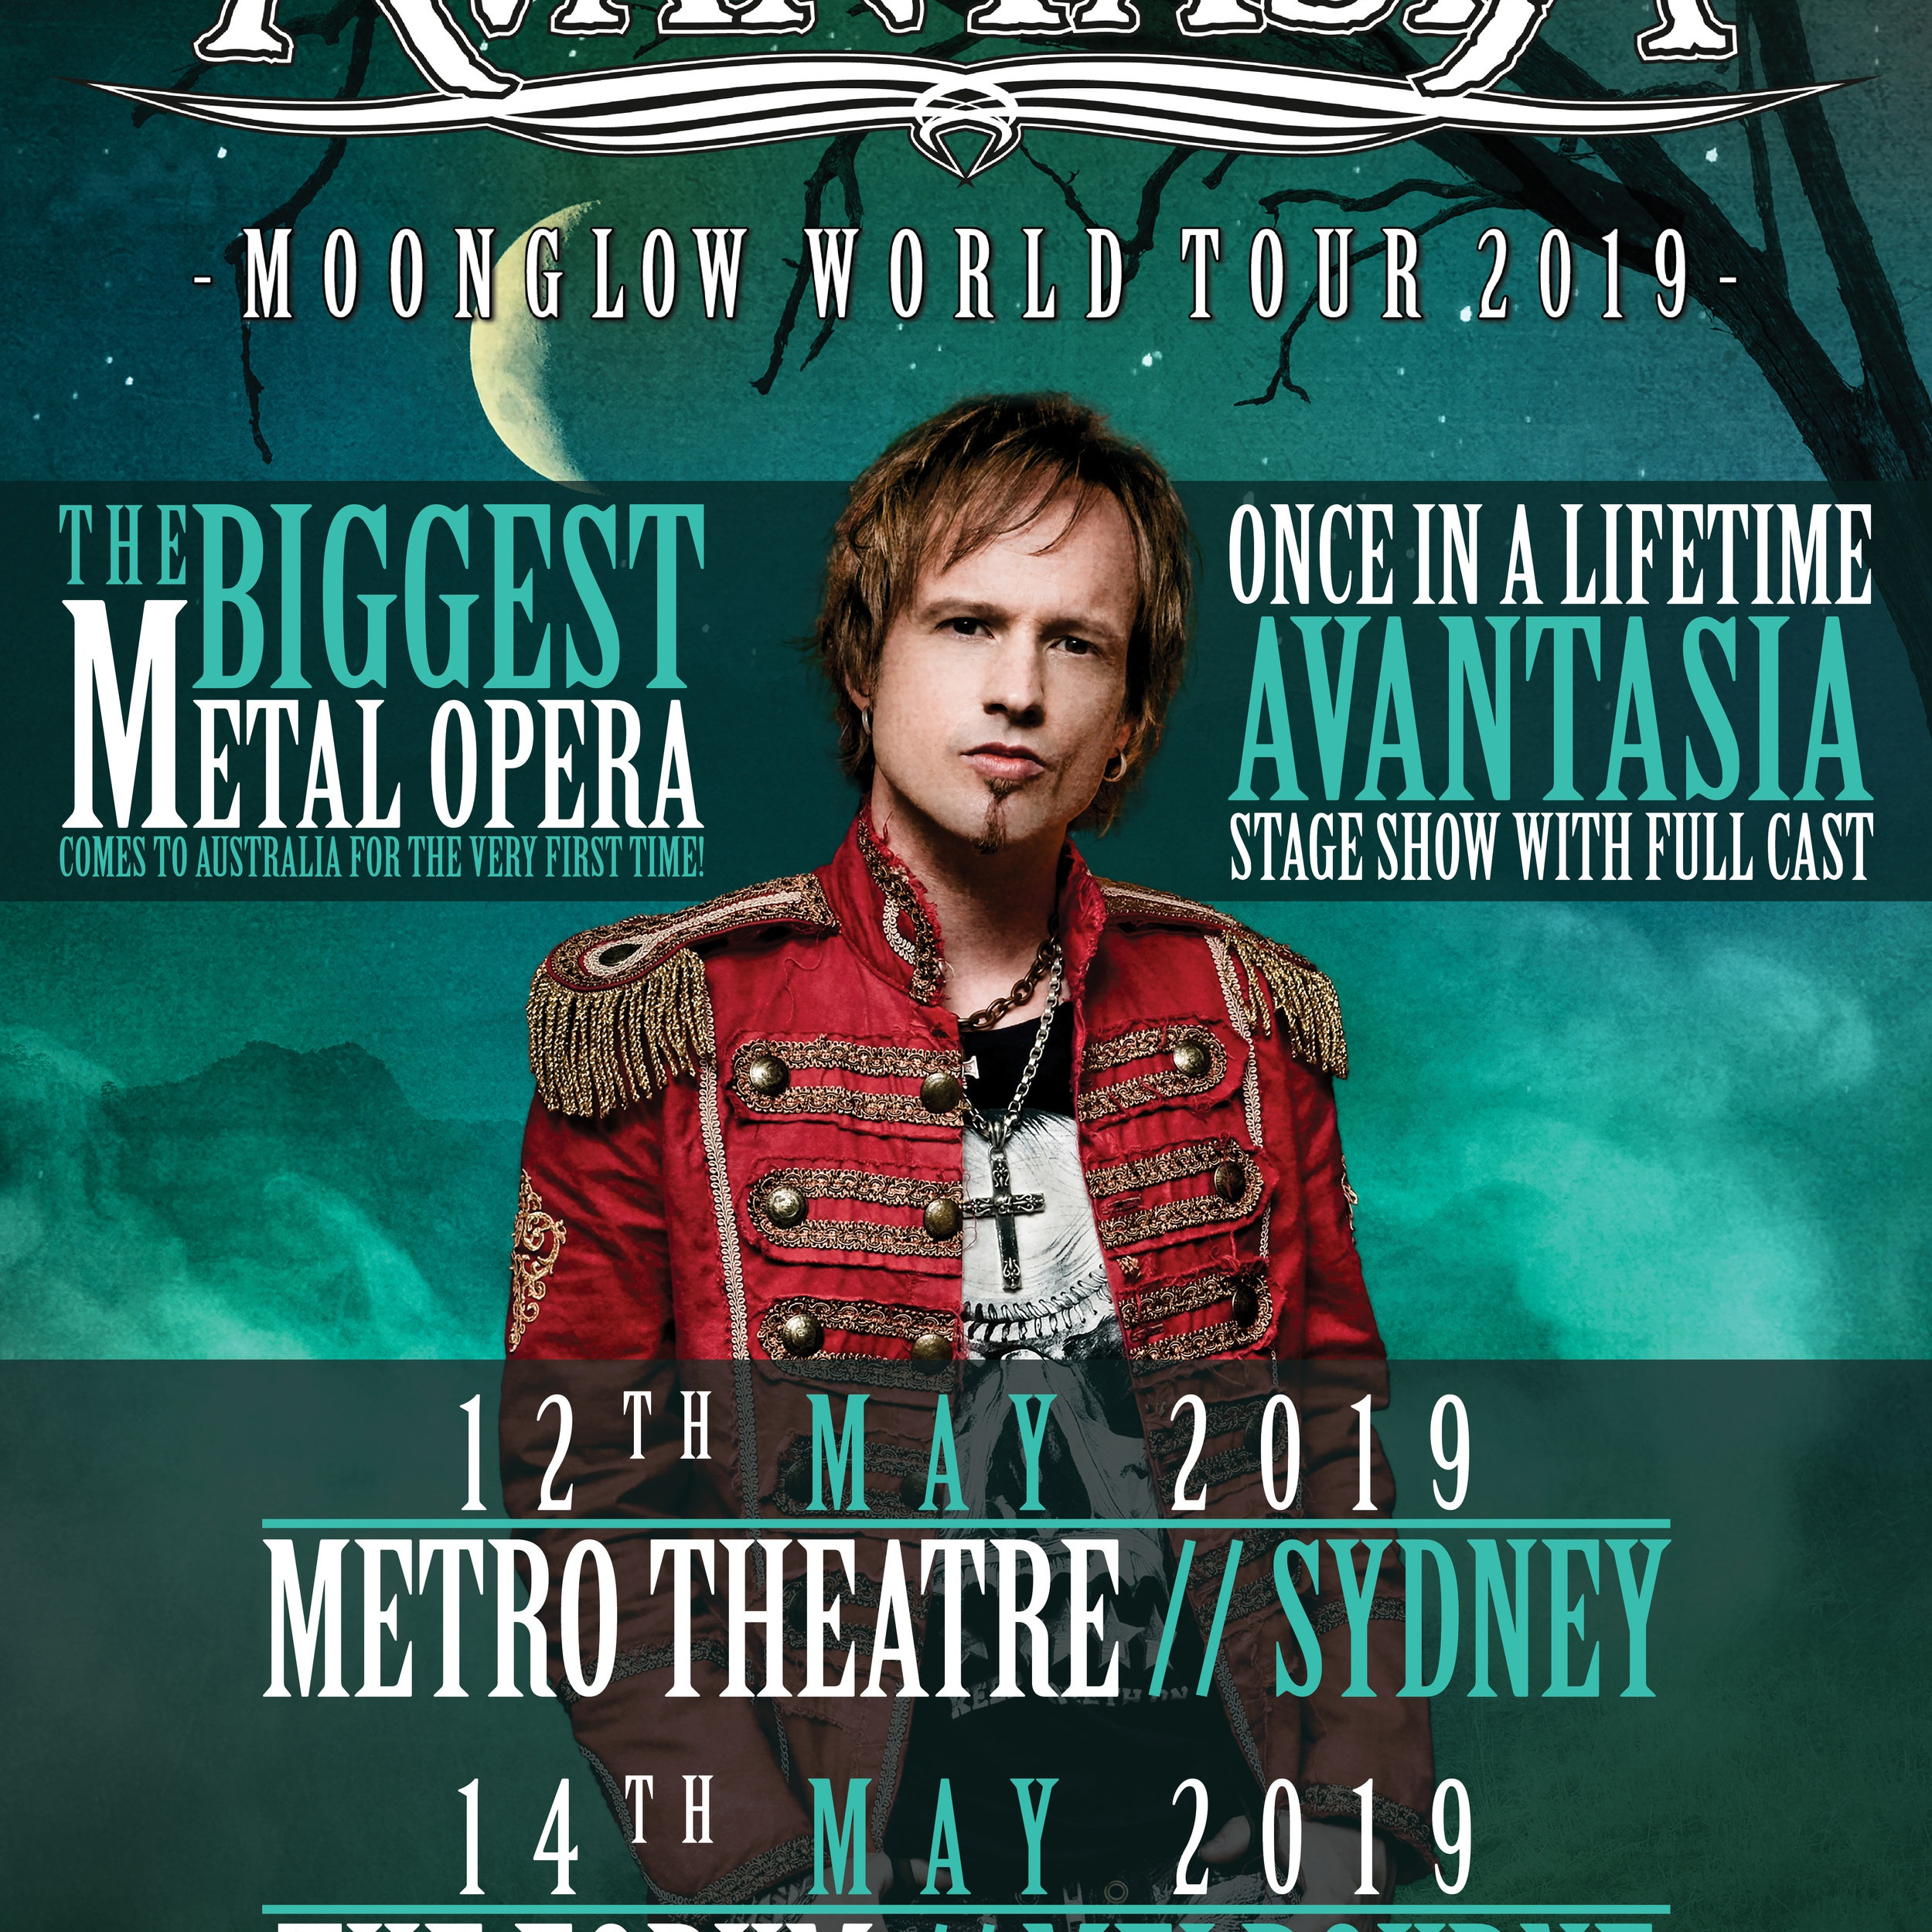 AVANTASIA, 22/04/2019 - SAY FAREWELL TO REALITY!